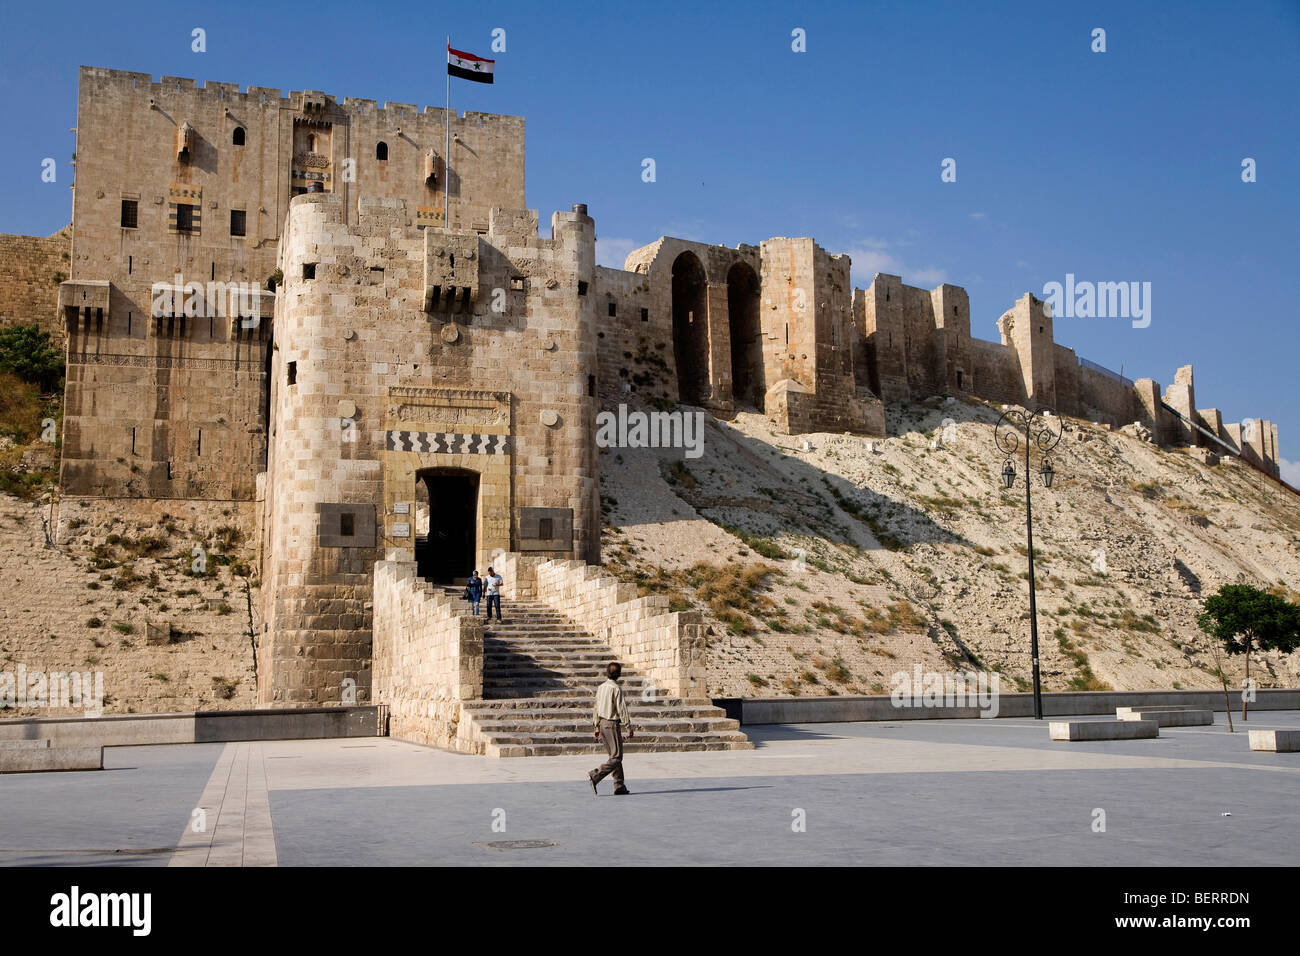 The old citadel, Aleppo, Syria, Middle East Stock Photo